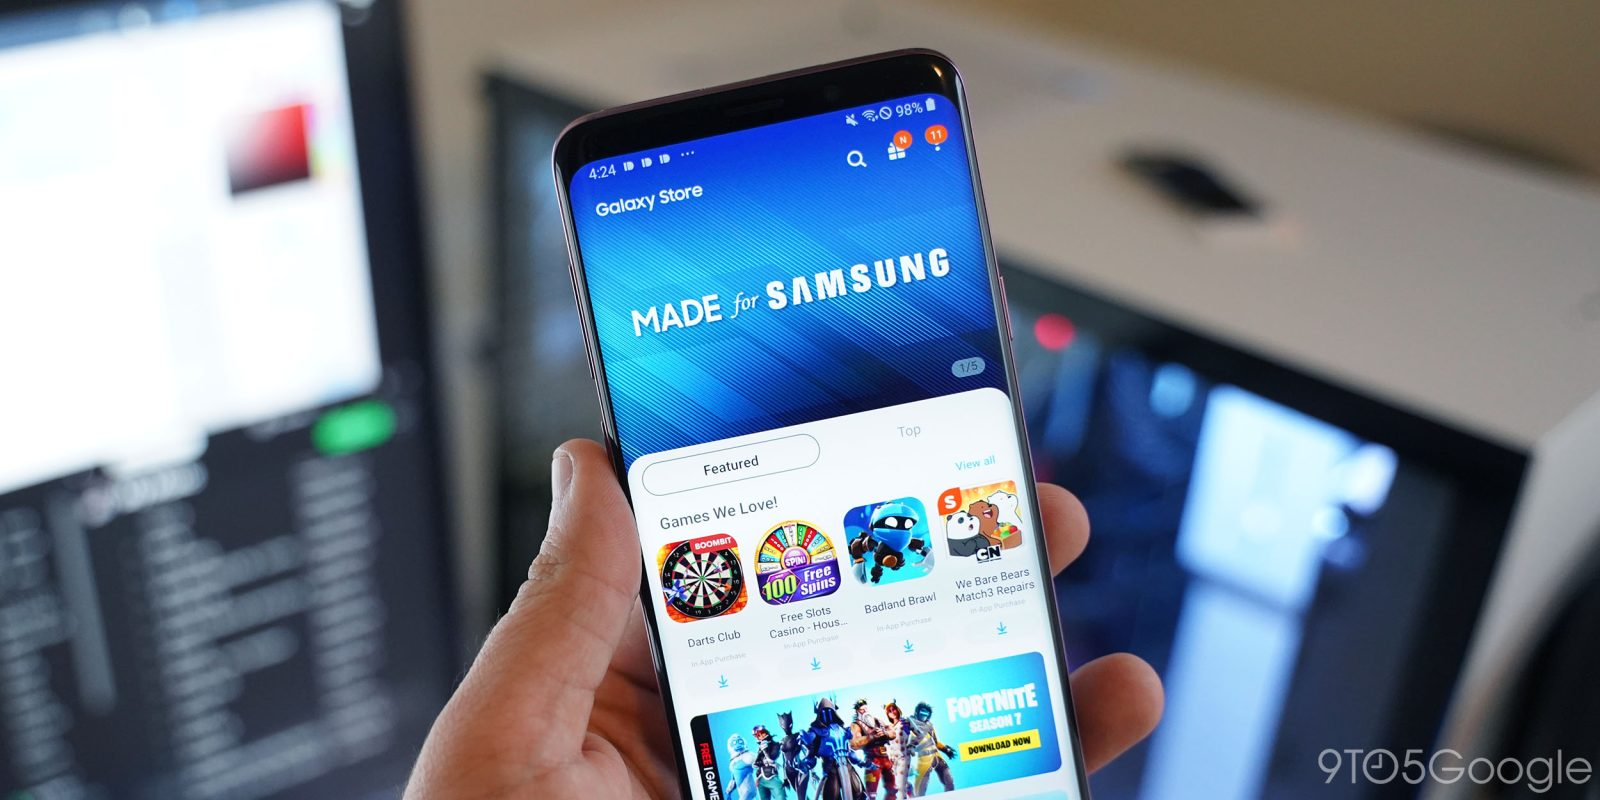 Samsung 'Galaxy Store' replaces Galaxy Apps, has One UI - 9to5Google